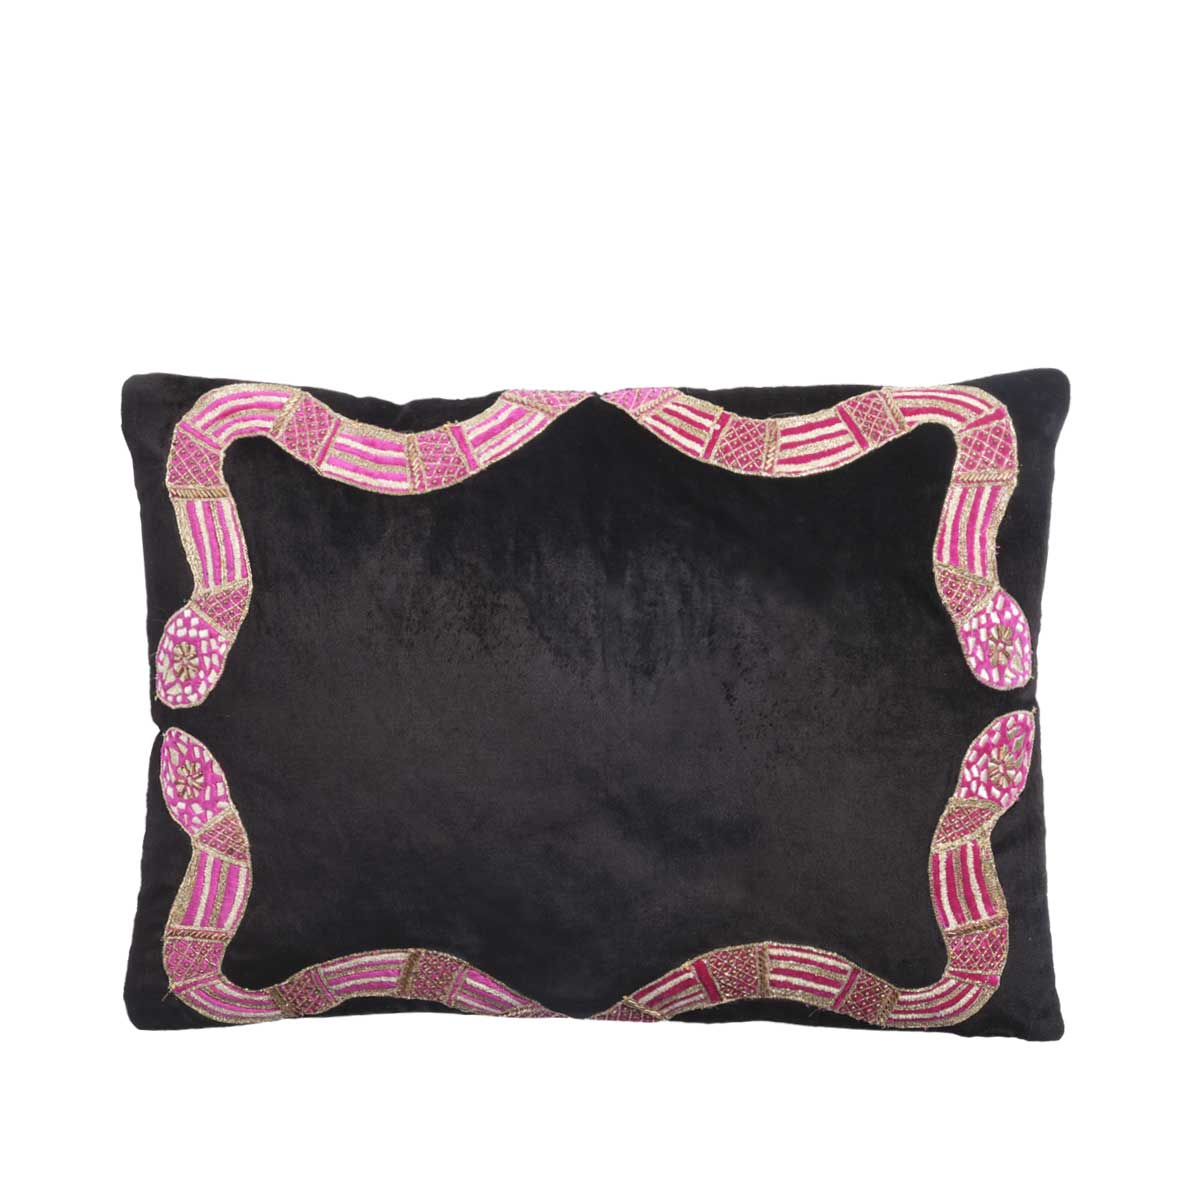 draco velvet cushion cover